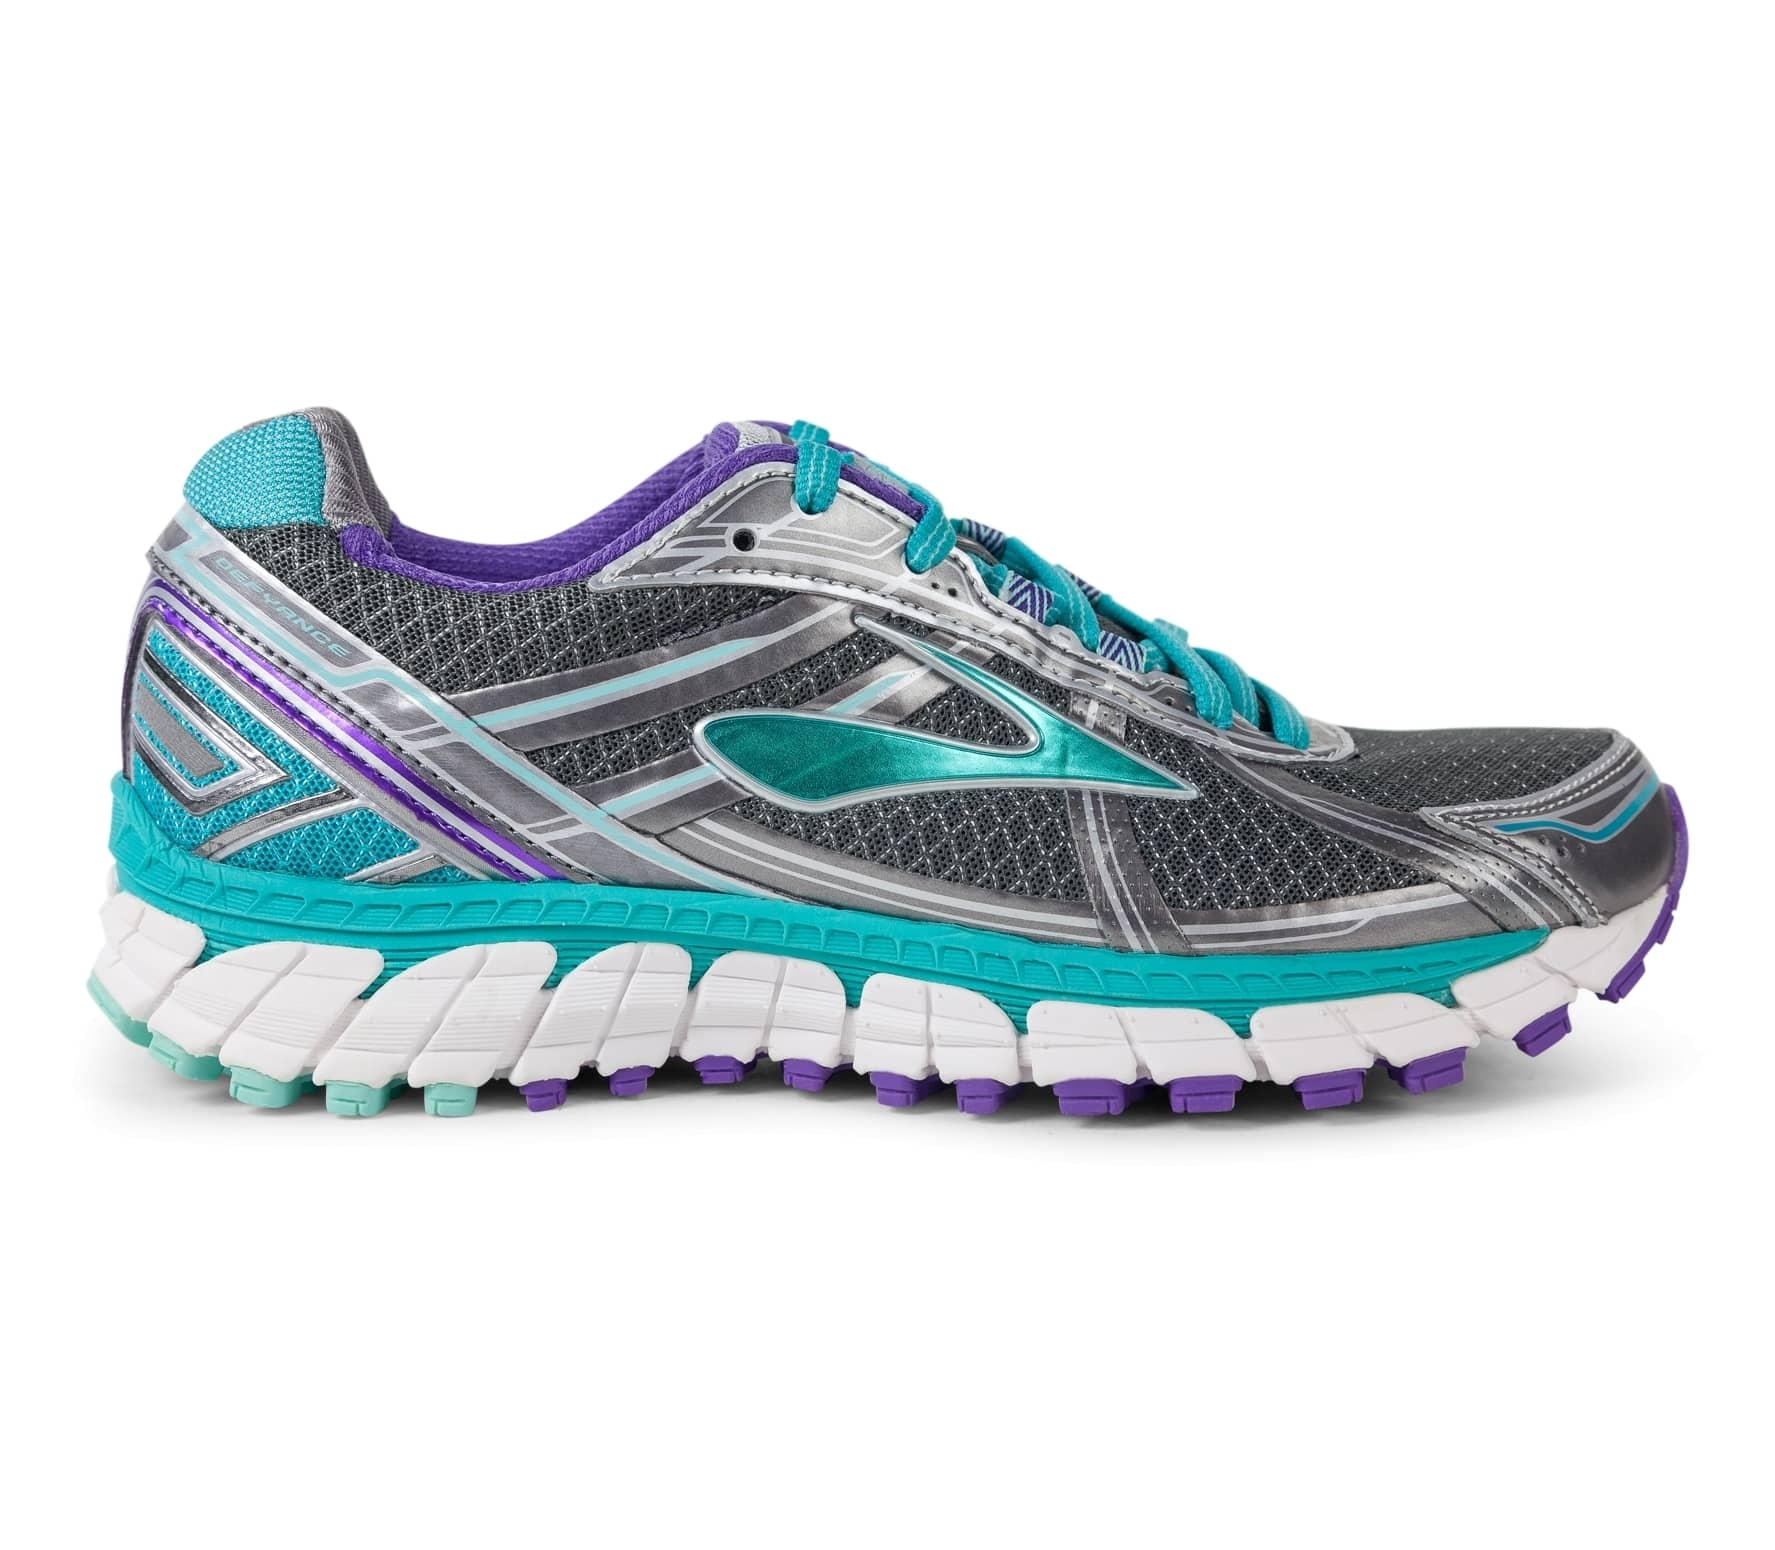 817e0f5efed Brooks - Defyance 9 women s running shoes (grey blue) - buy it at ...